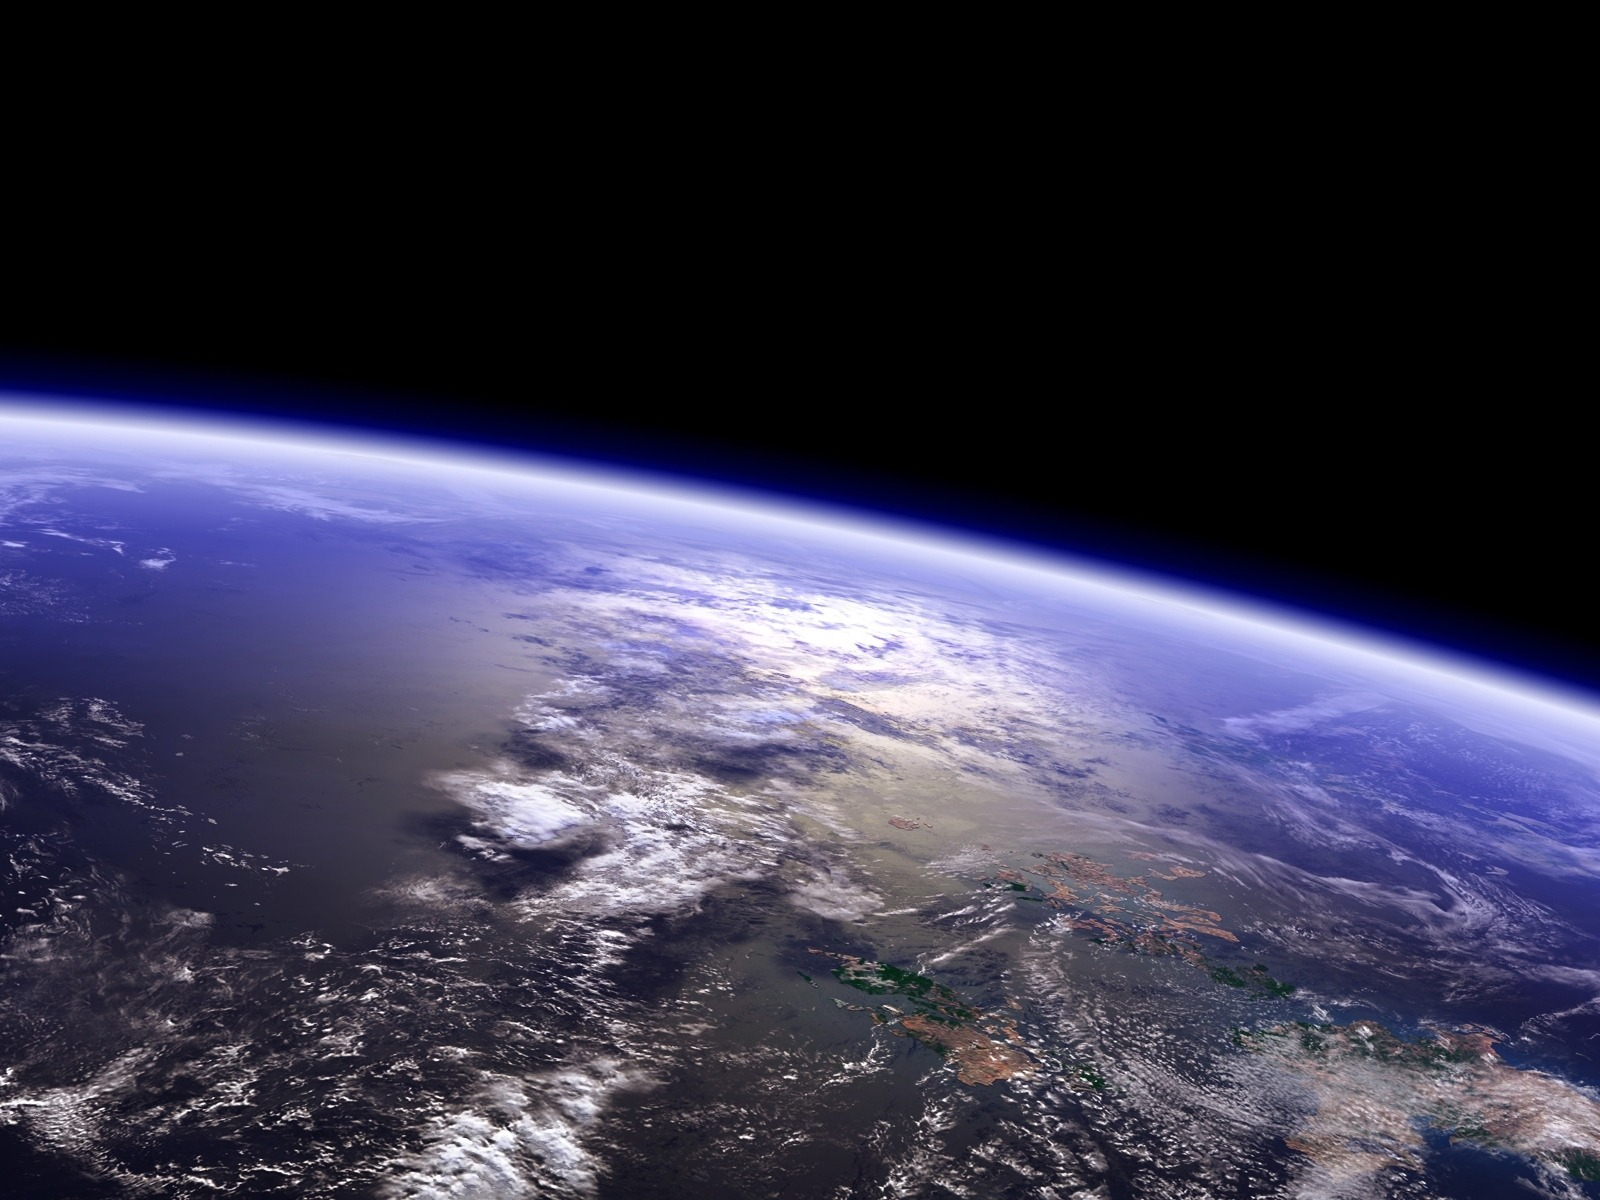 High Quality Beutiful Earth Look From Space Nature Wallpaper 1600x1200 1600x1200